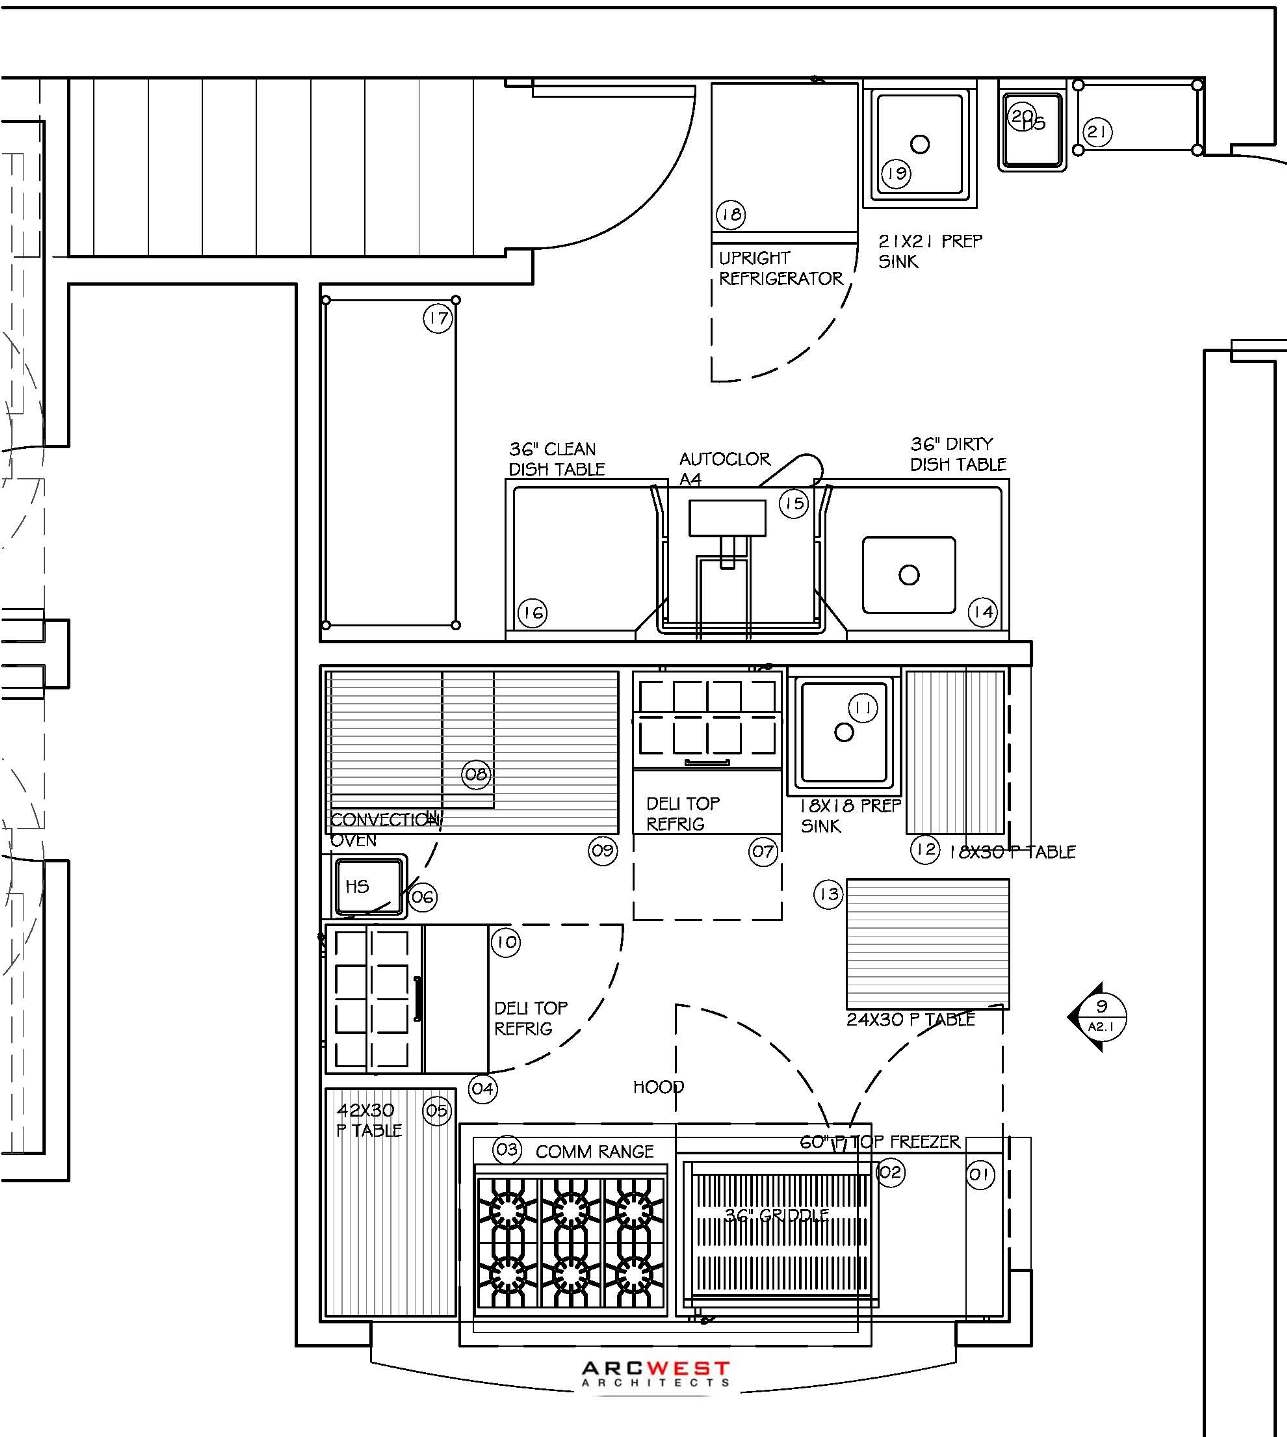 Industrial Kitchen Layout Plan: Commercial Redevelopment